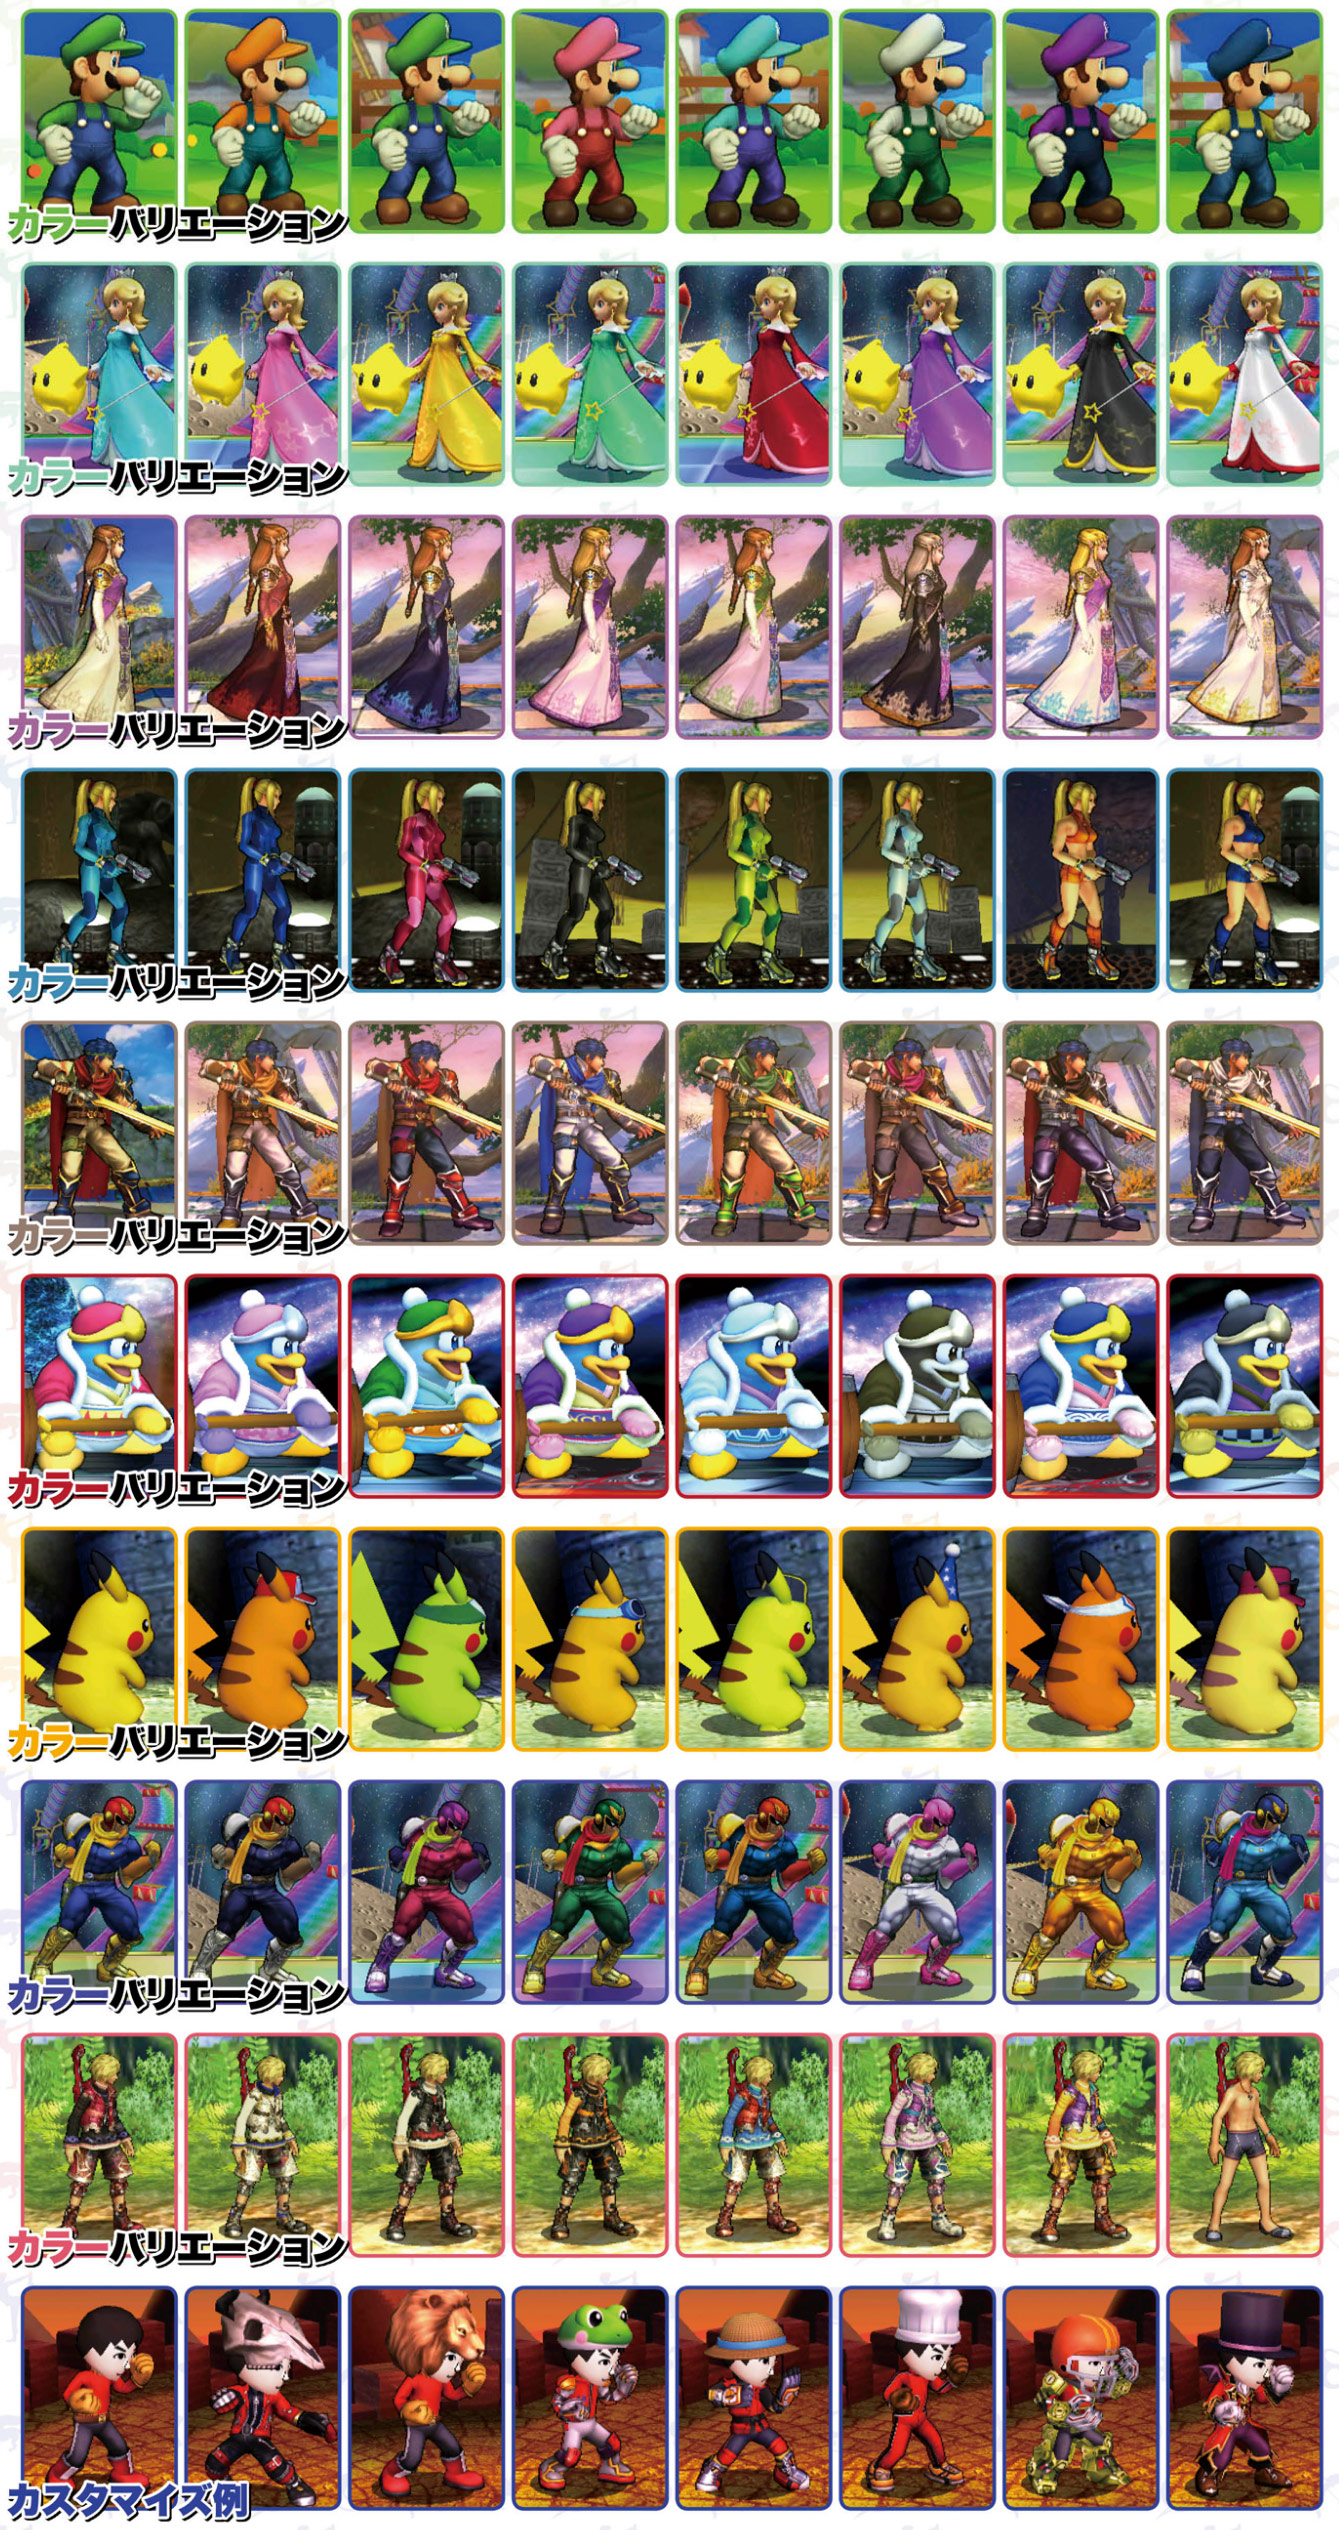 Every color palette for all currently announced characters in Super Smash Bros. 3DS image #2